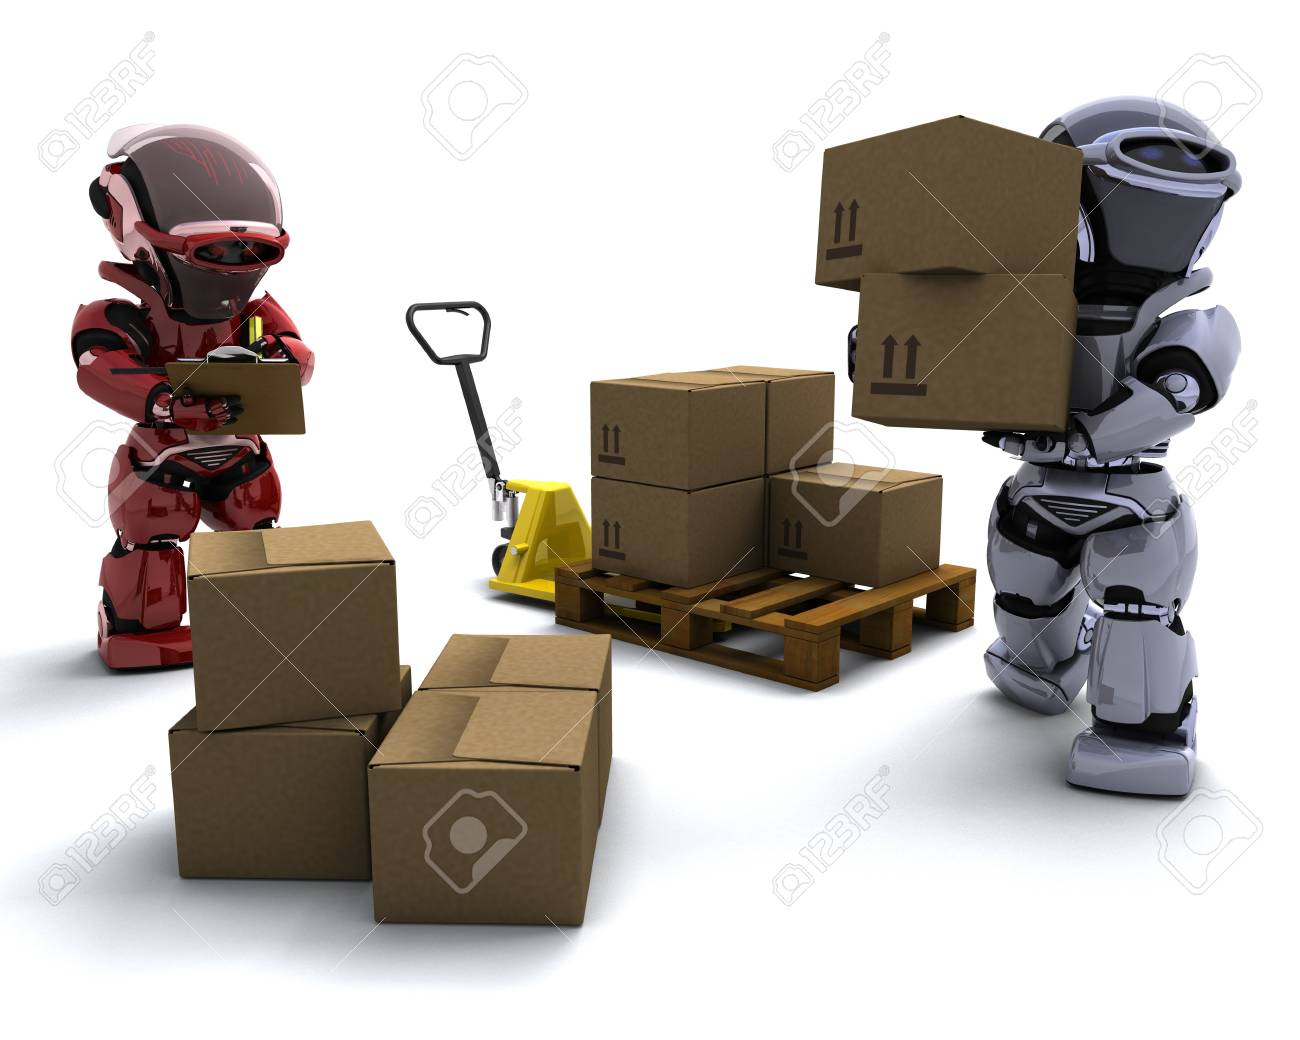 3D render of Robot with Shipping Boxes Stock Photo - 9083643